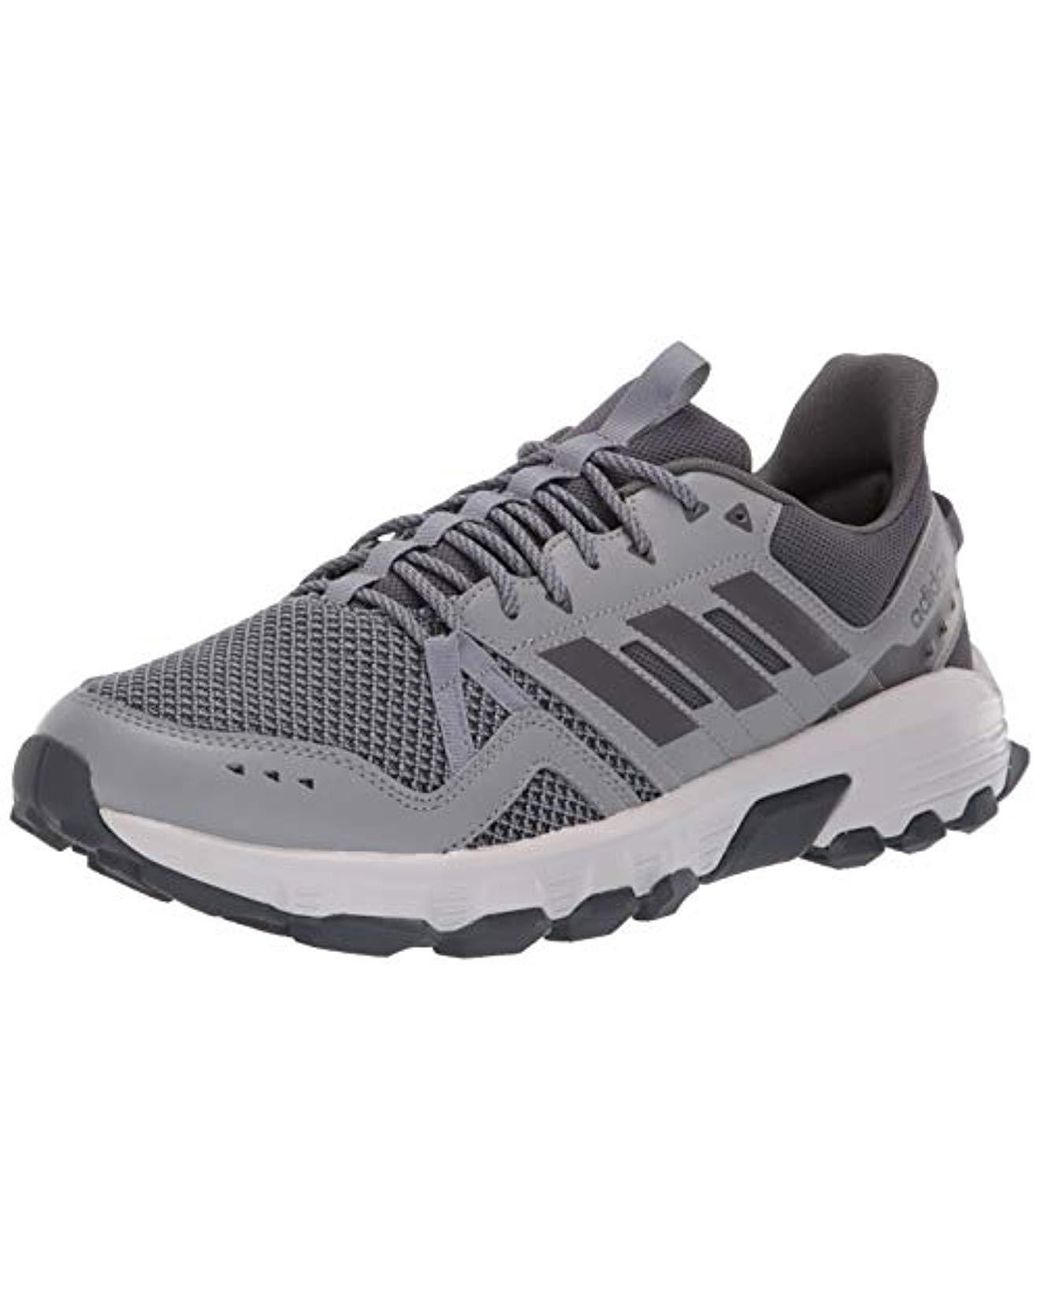 e8d8c46e2 Lyst - adidas Rockadia Trail M Running Shoe in Gray for Men